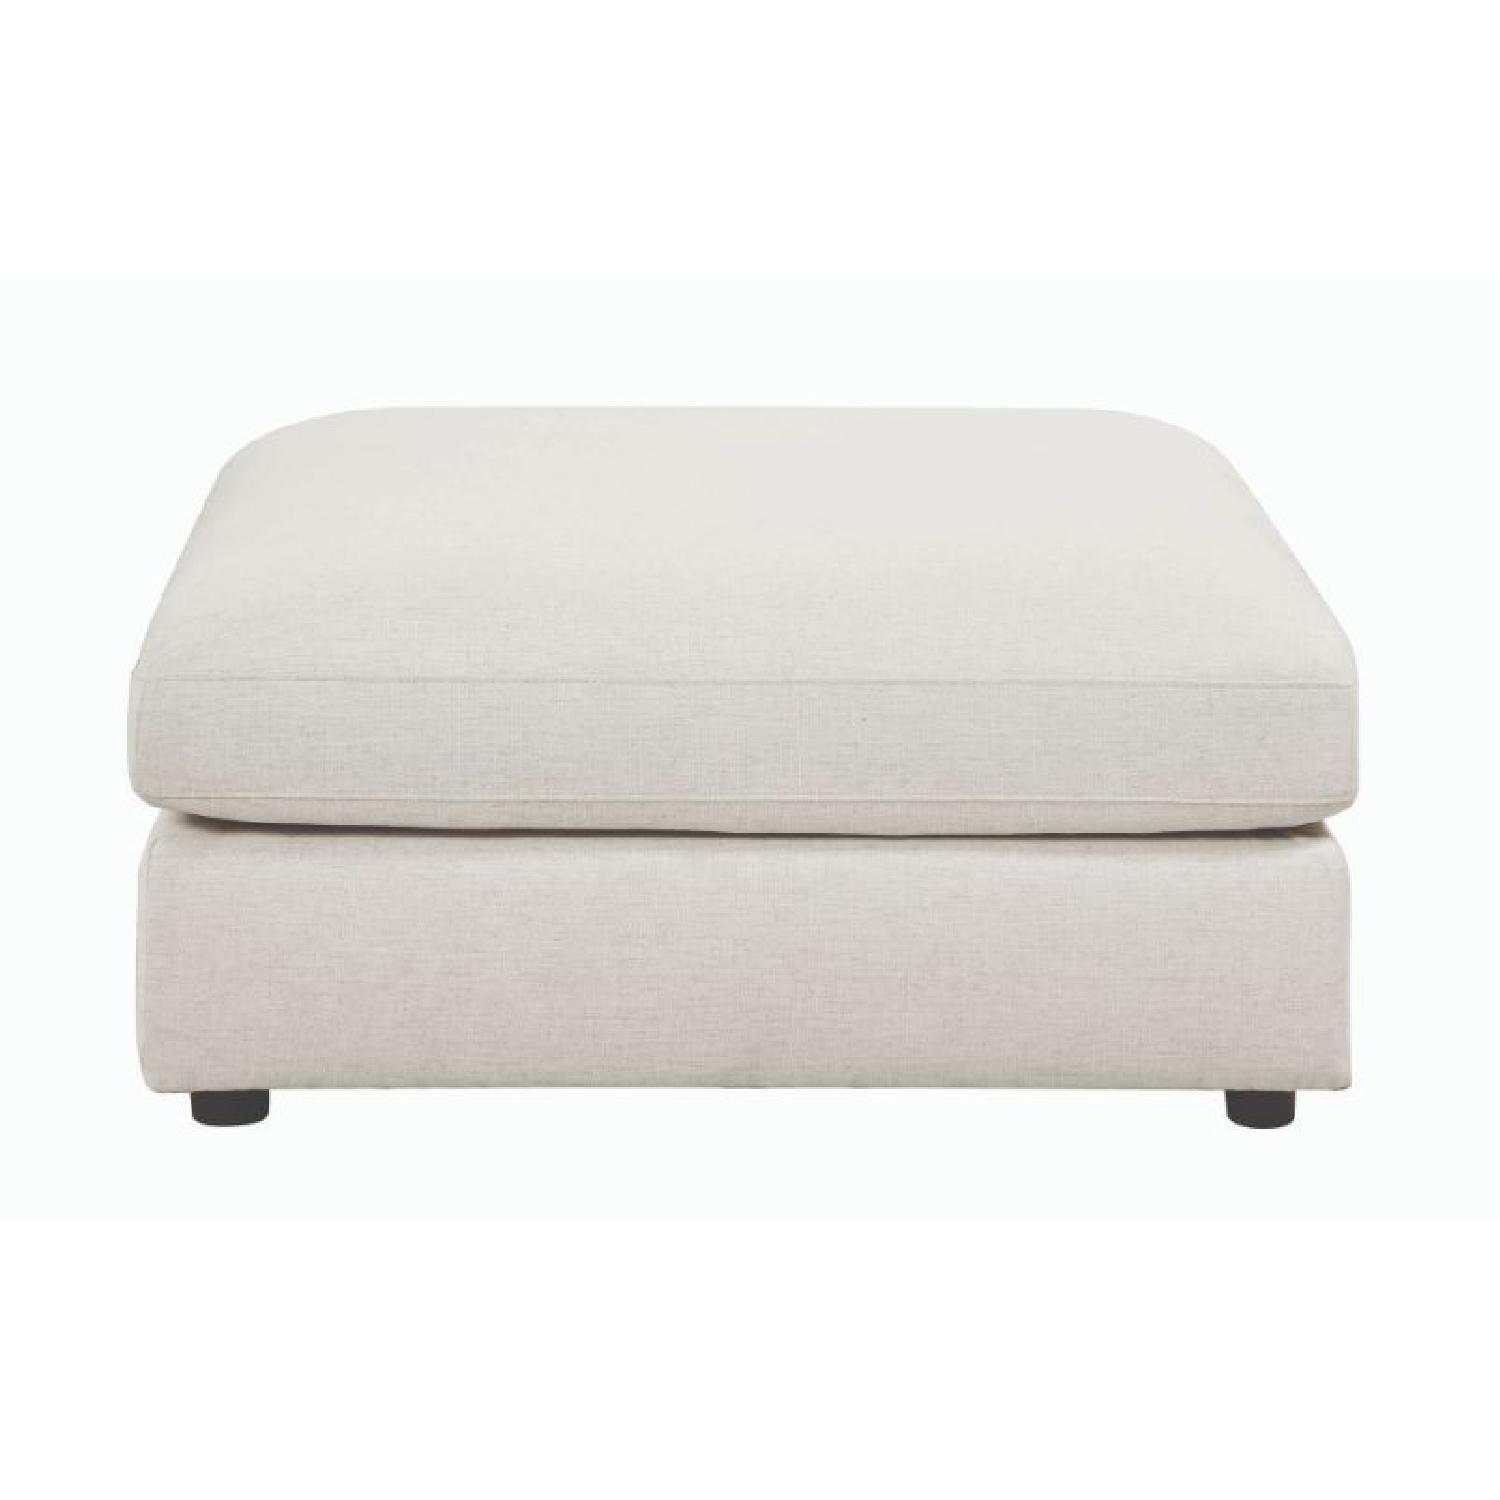 Modern Daybed w/ Trundle Upholstered in Light Grey Fabric - image-15